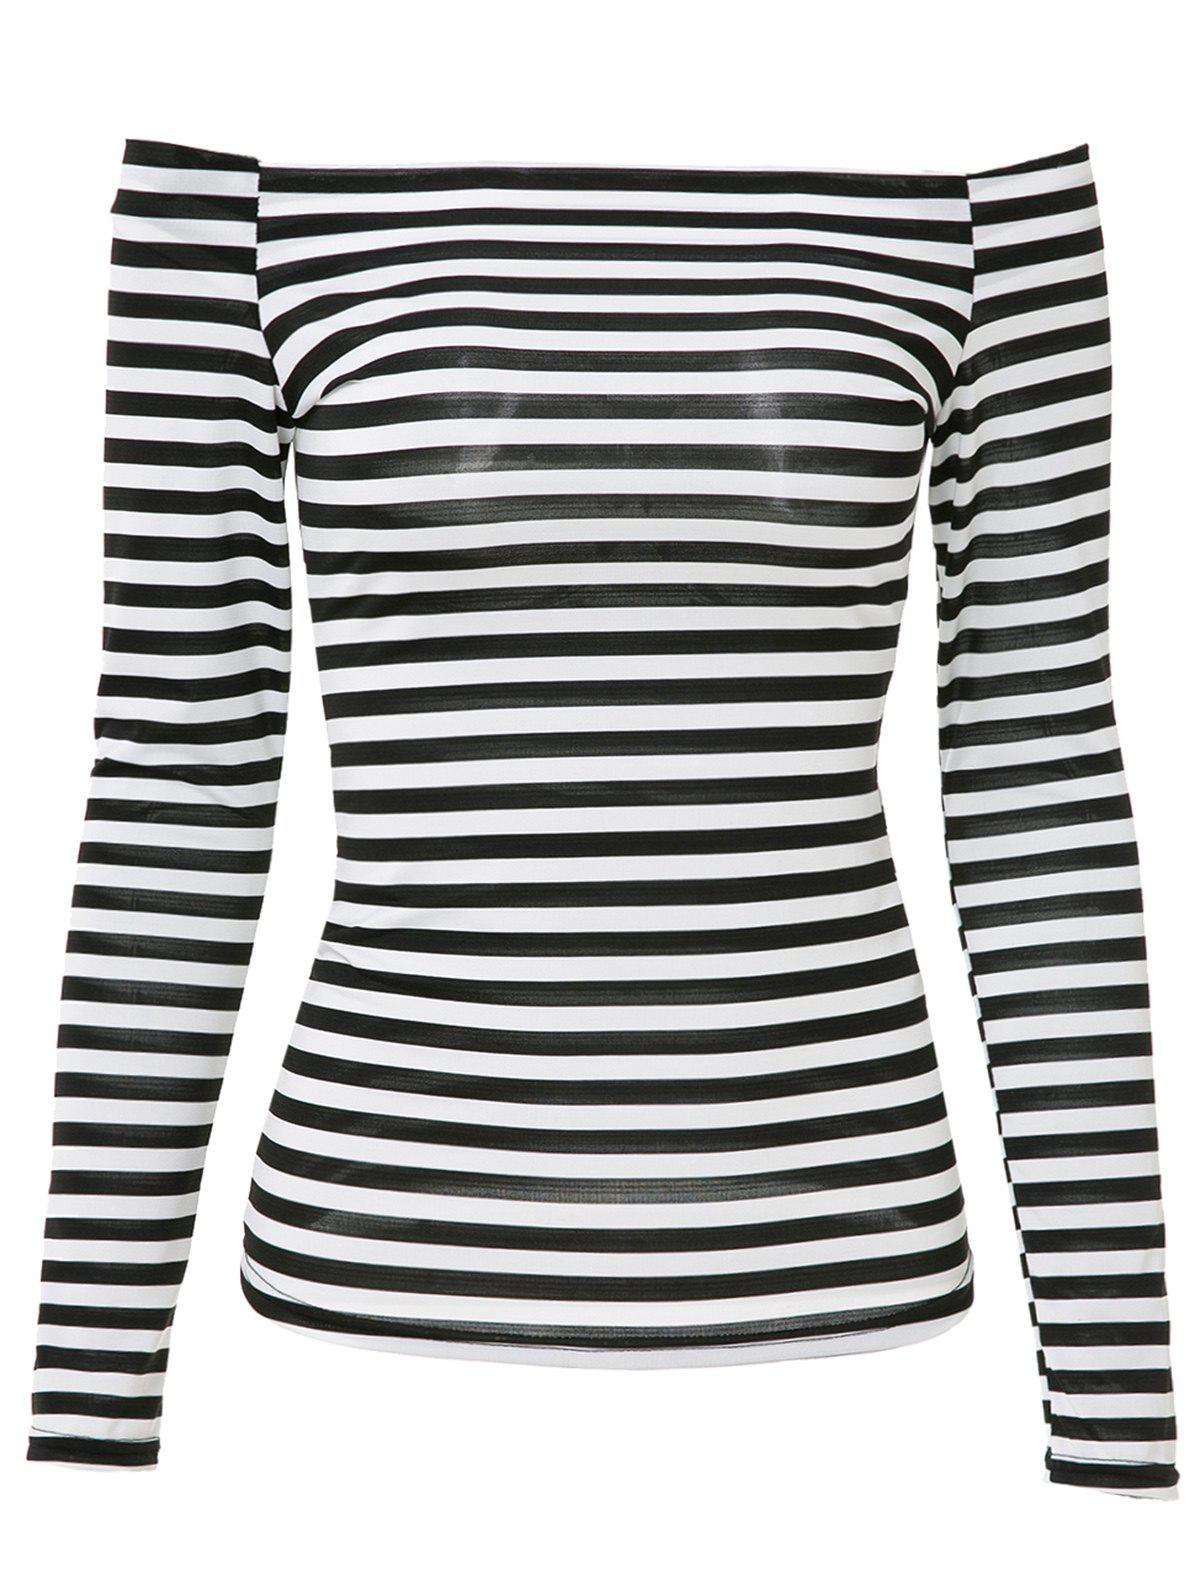 Attractive Striped Off-The-Shoulder Long Sleeve Bodycon T-Shirt For Women - WHITE/BLACK XL